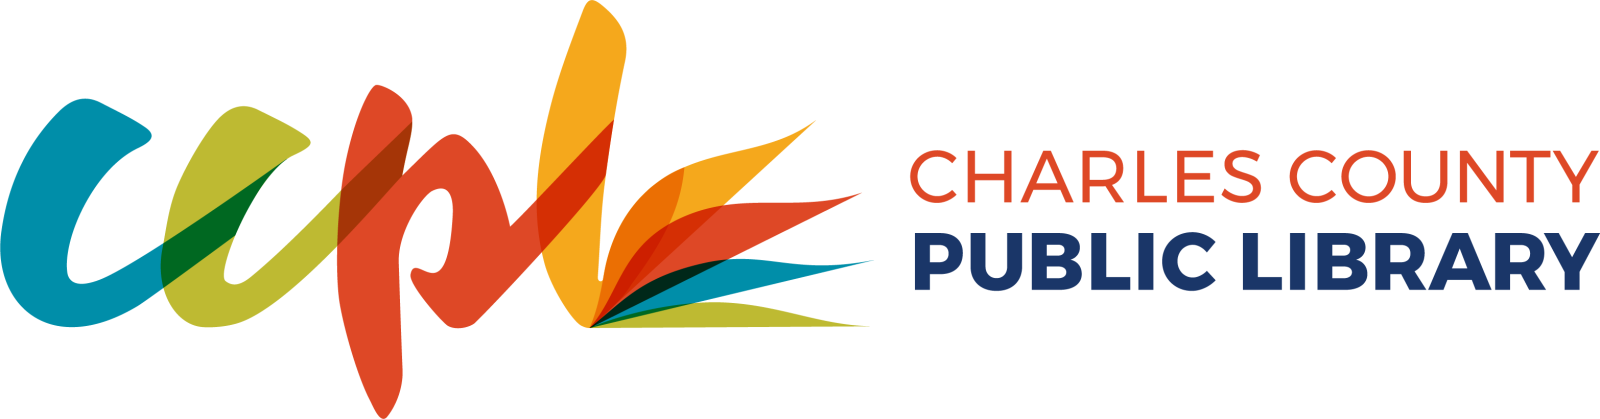 Charles County Public Library Logo